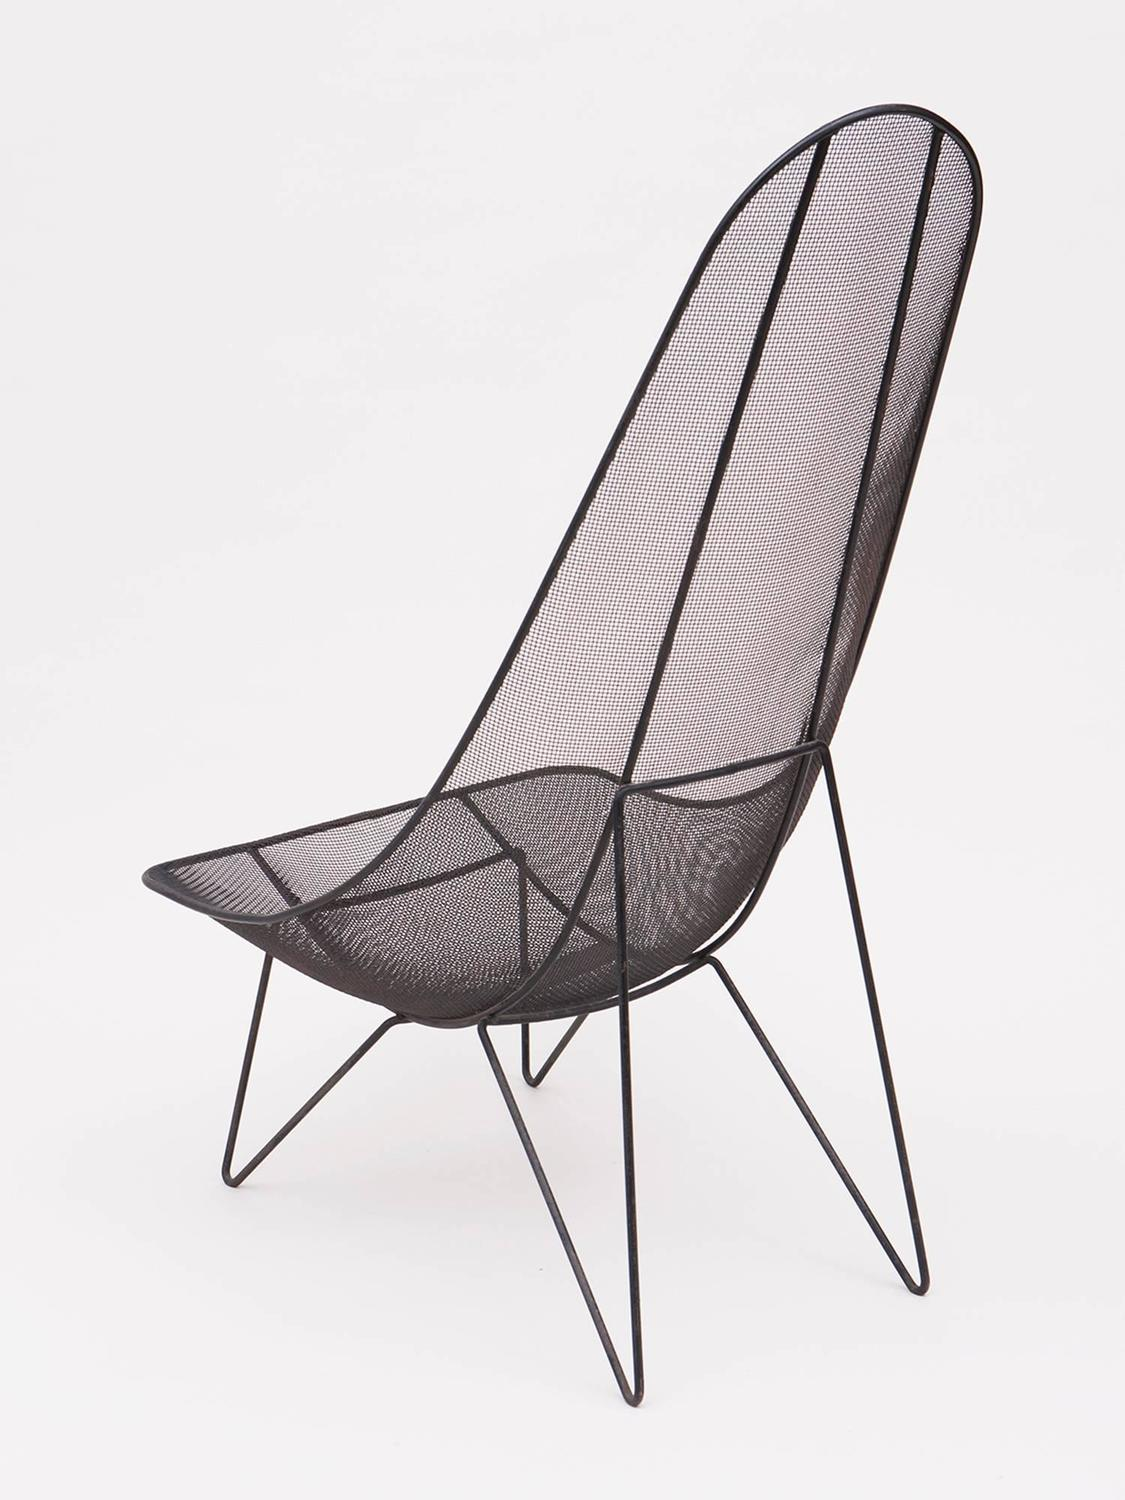 Sol Bloom Scoop High Back Mesh Lounge Chair For Sale at 1stdibs